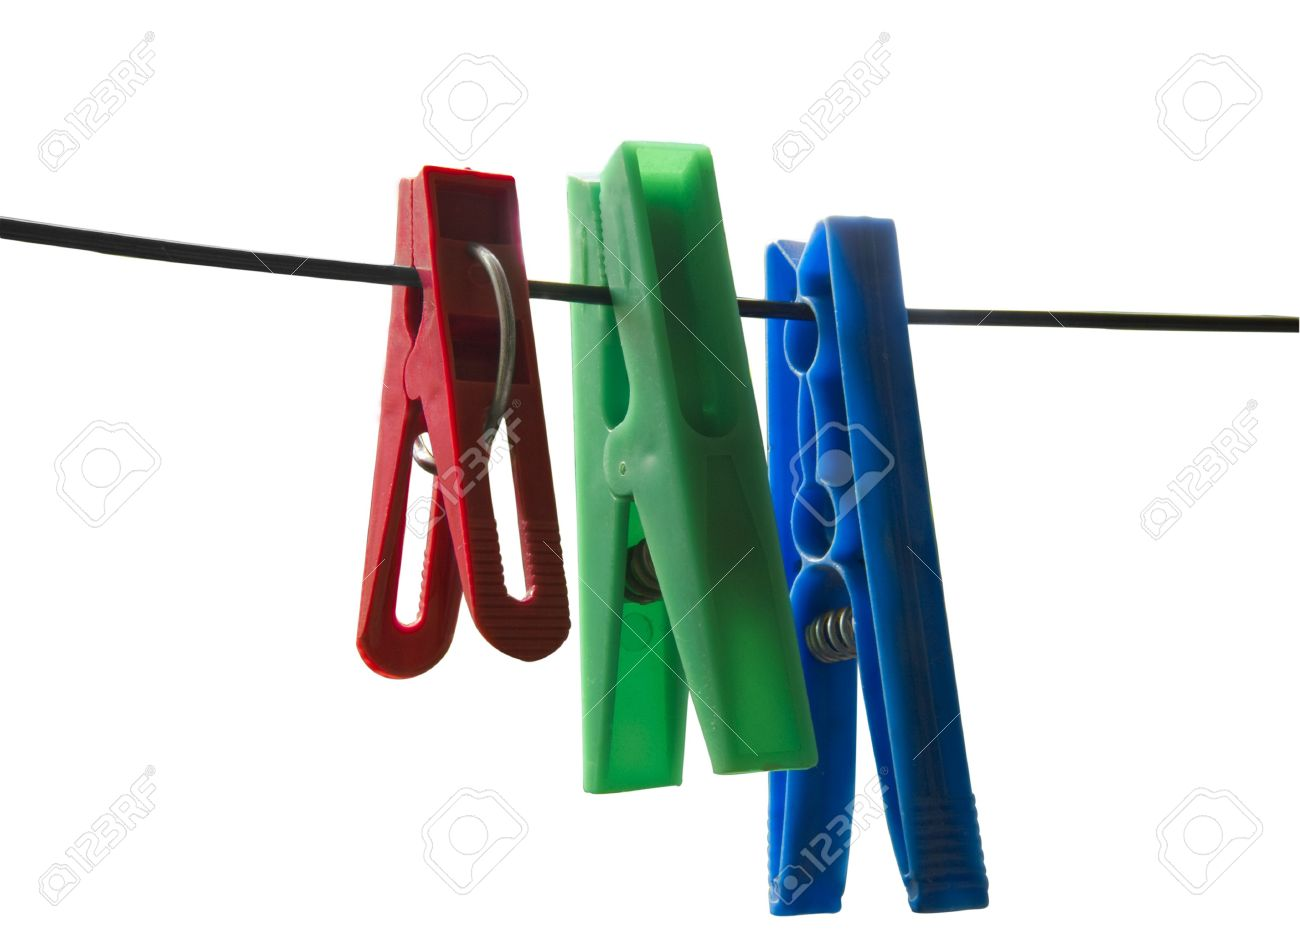 Three Plastic Clips, Red, Green And Blue Hanging On The Clothesline On A  White